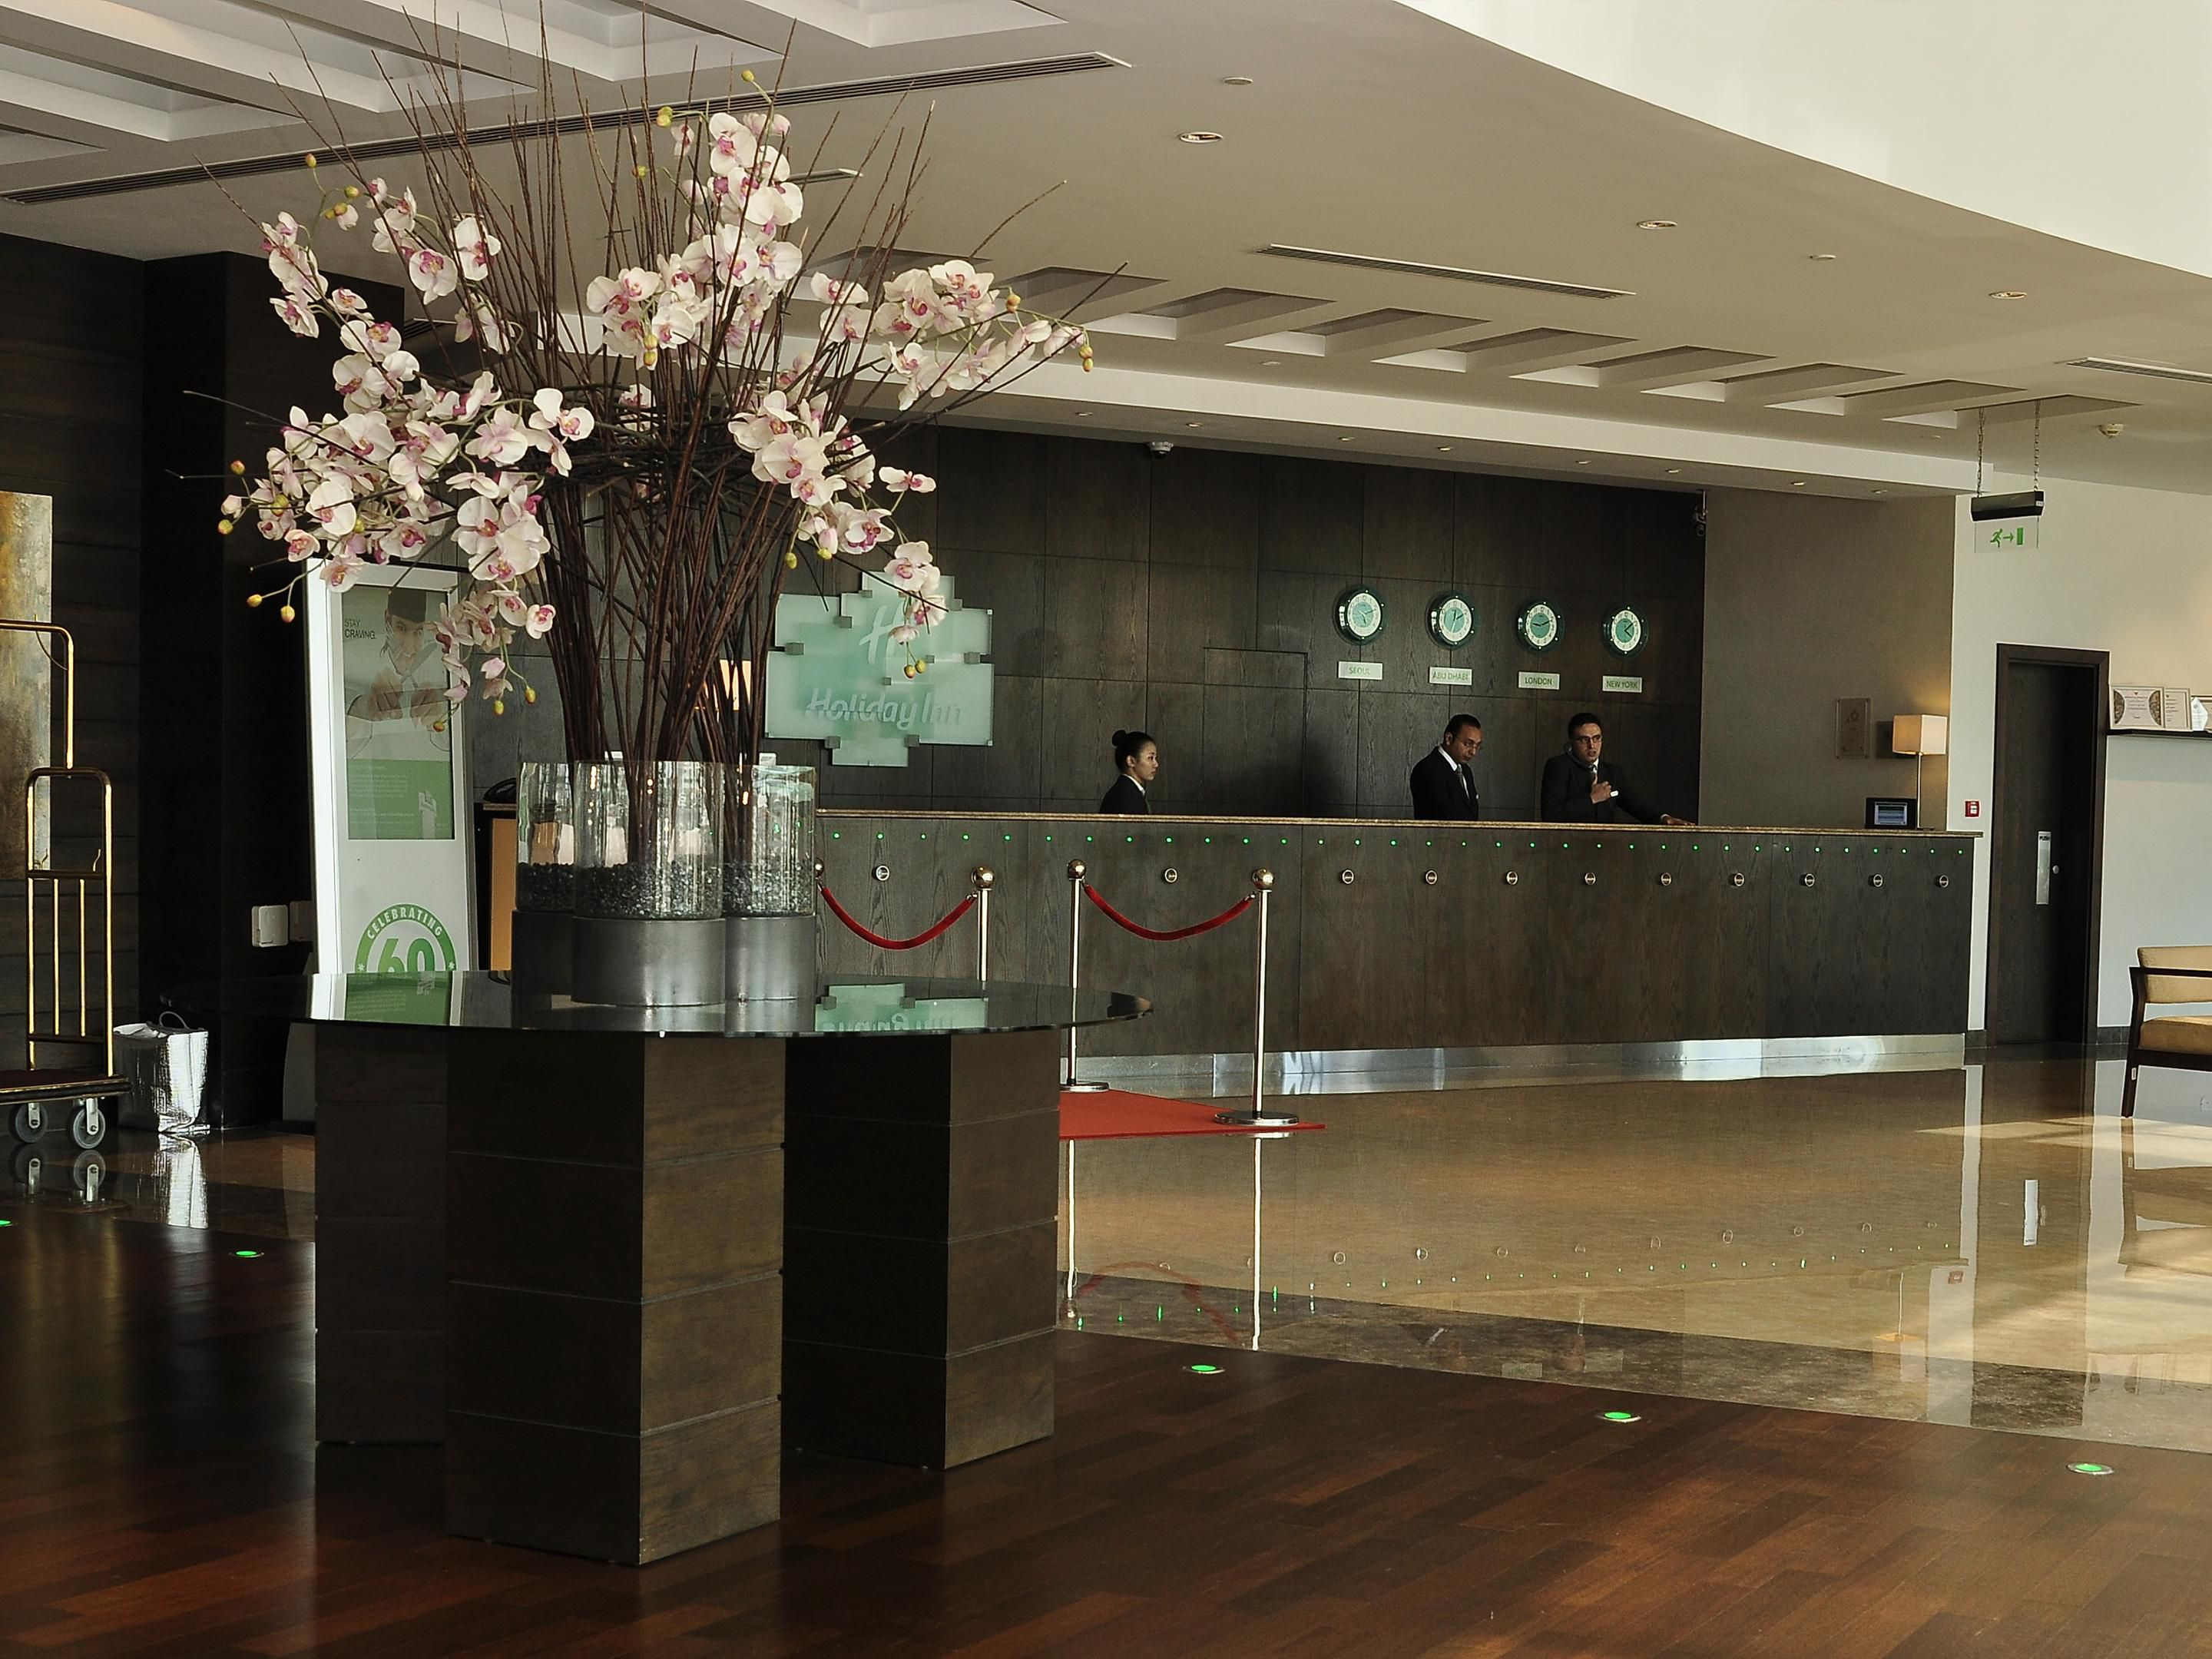 Our welcoming lobby